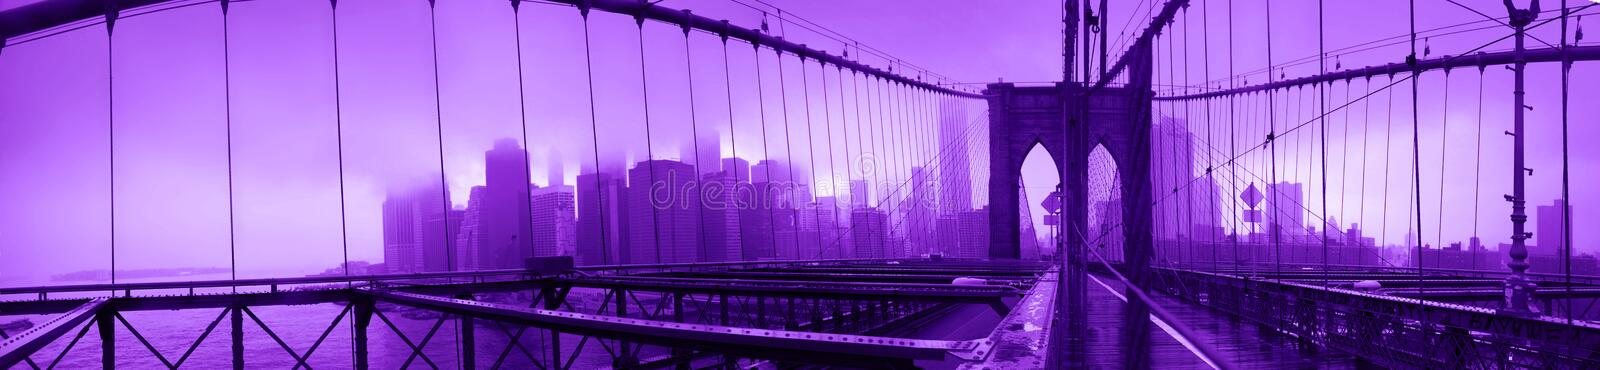 Ultraviolet Brooklyn Bridge stock images